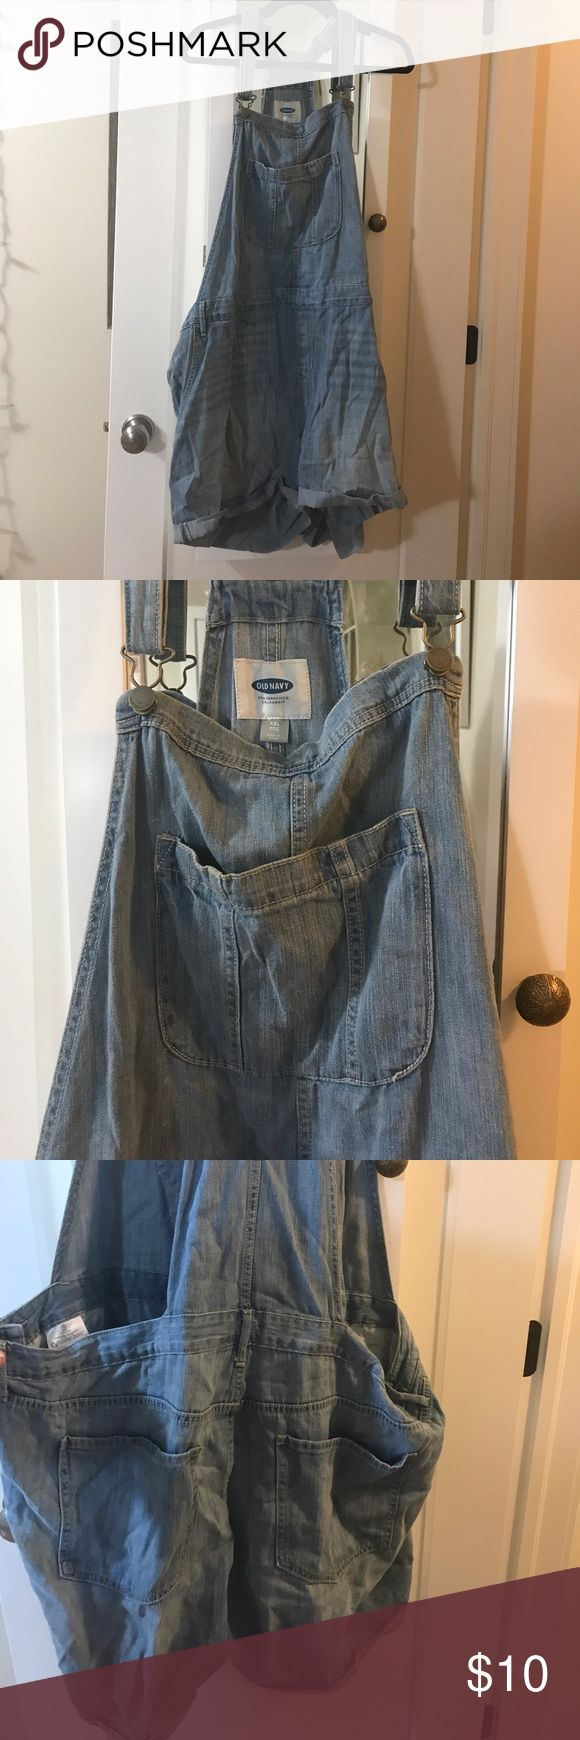 Short Overalls The overalls have a lightwash denim look, but a softer feel. Made of 100% cotton and are very comfy, cute and easy to style!   Worn 2-3 times. Old Navy Jeans Overalls